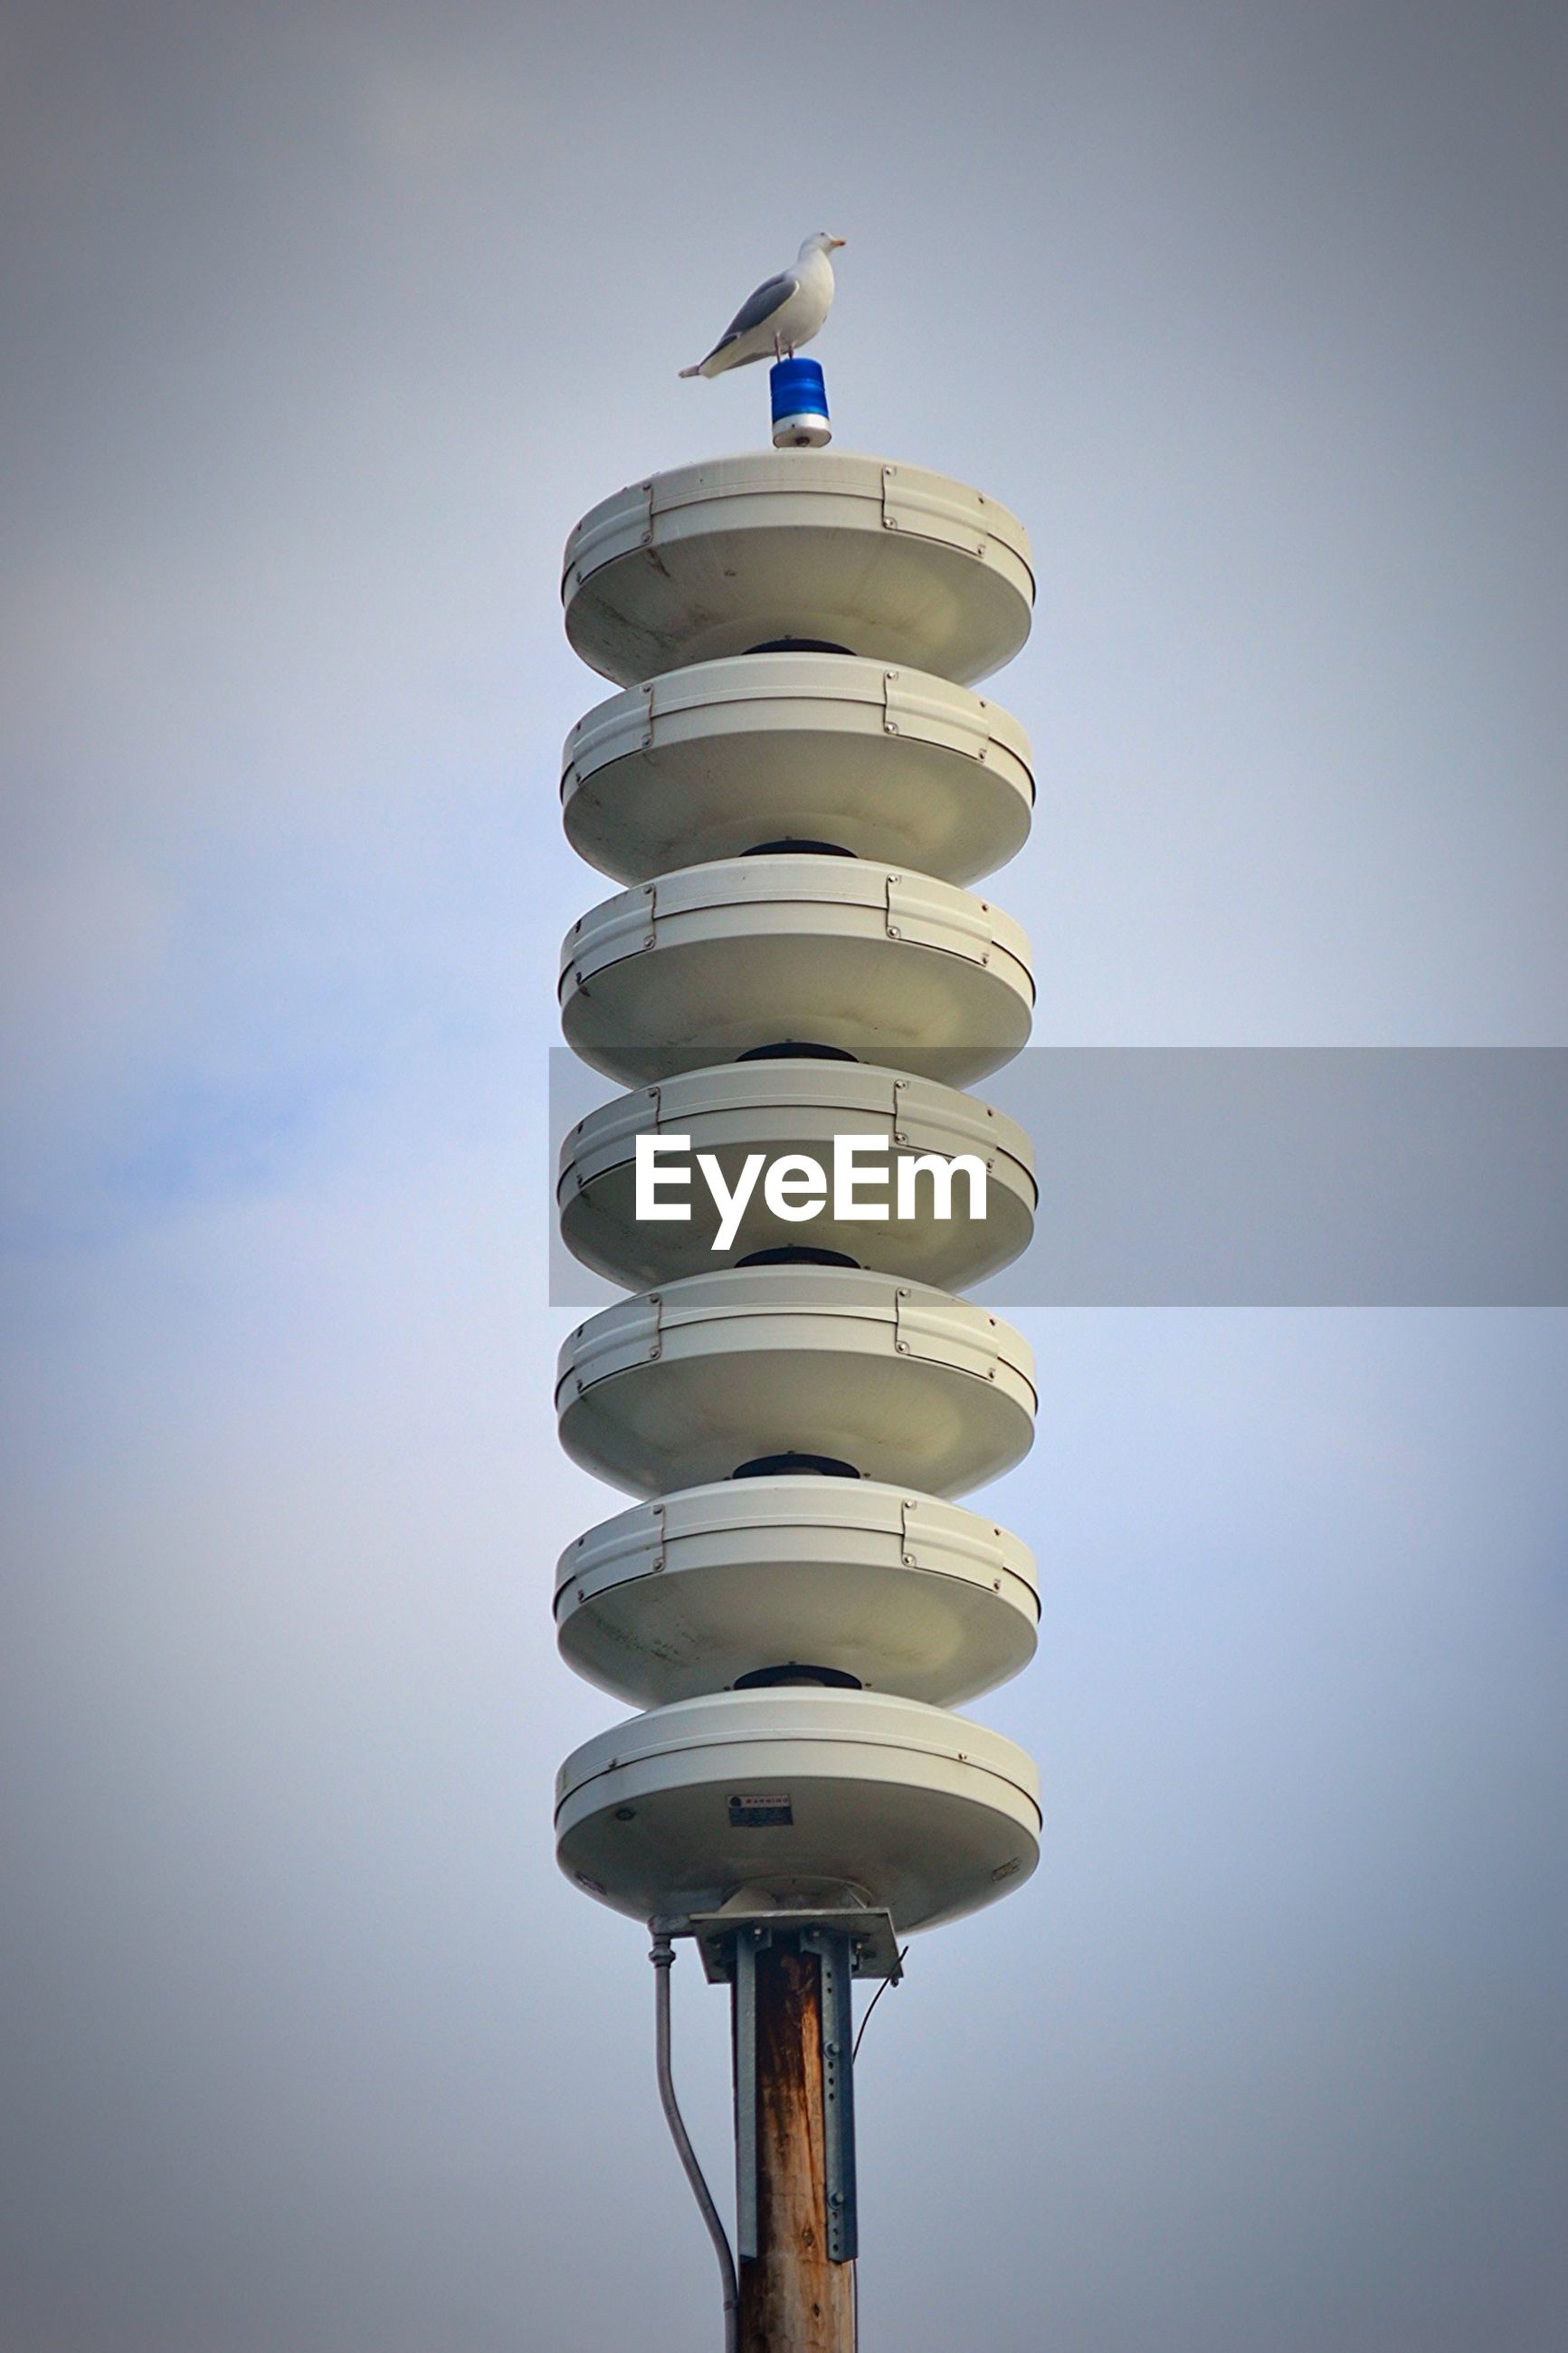 Low angle view of seagull perching on siren tower against sky